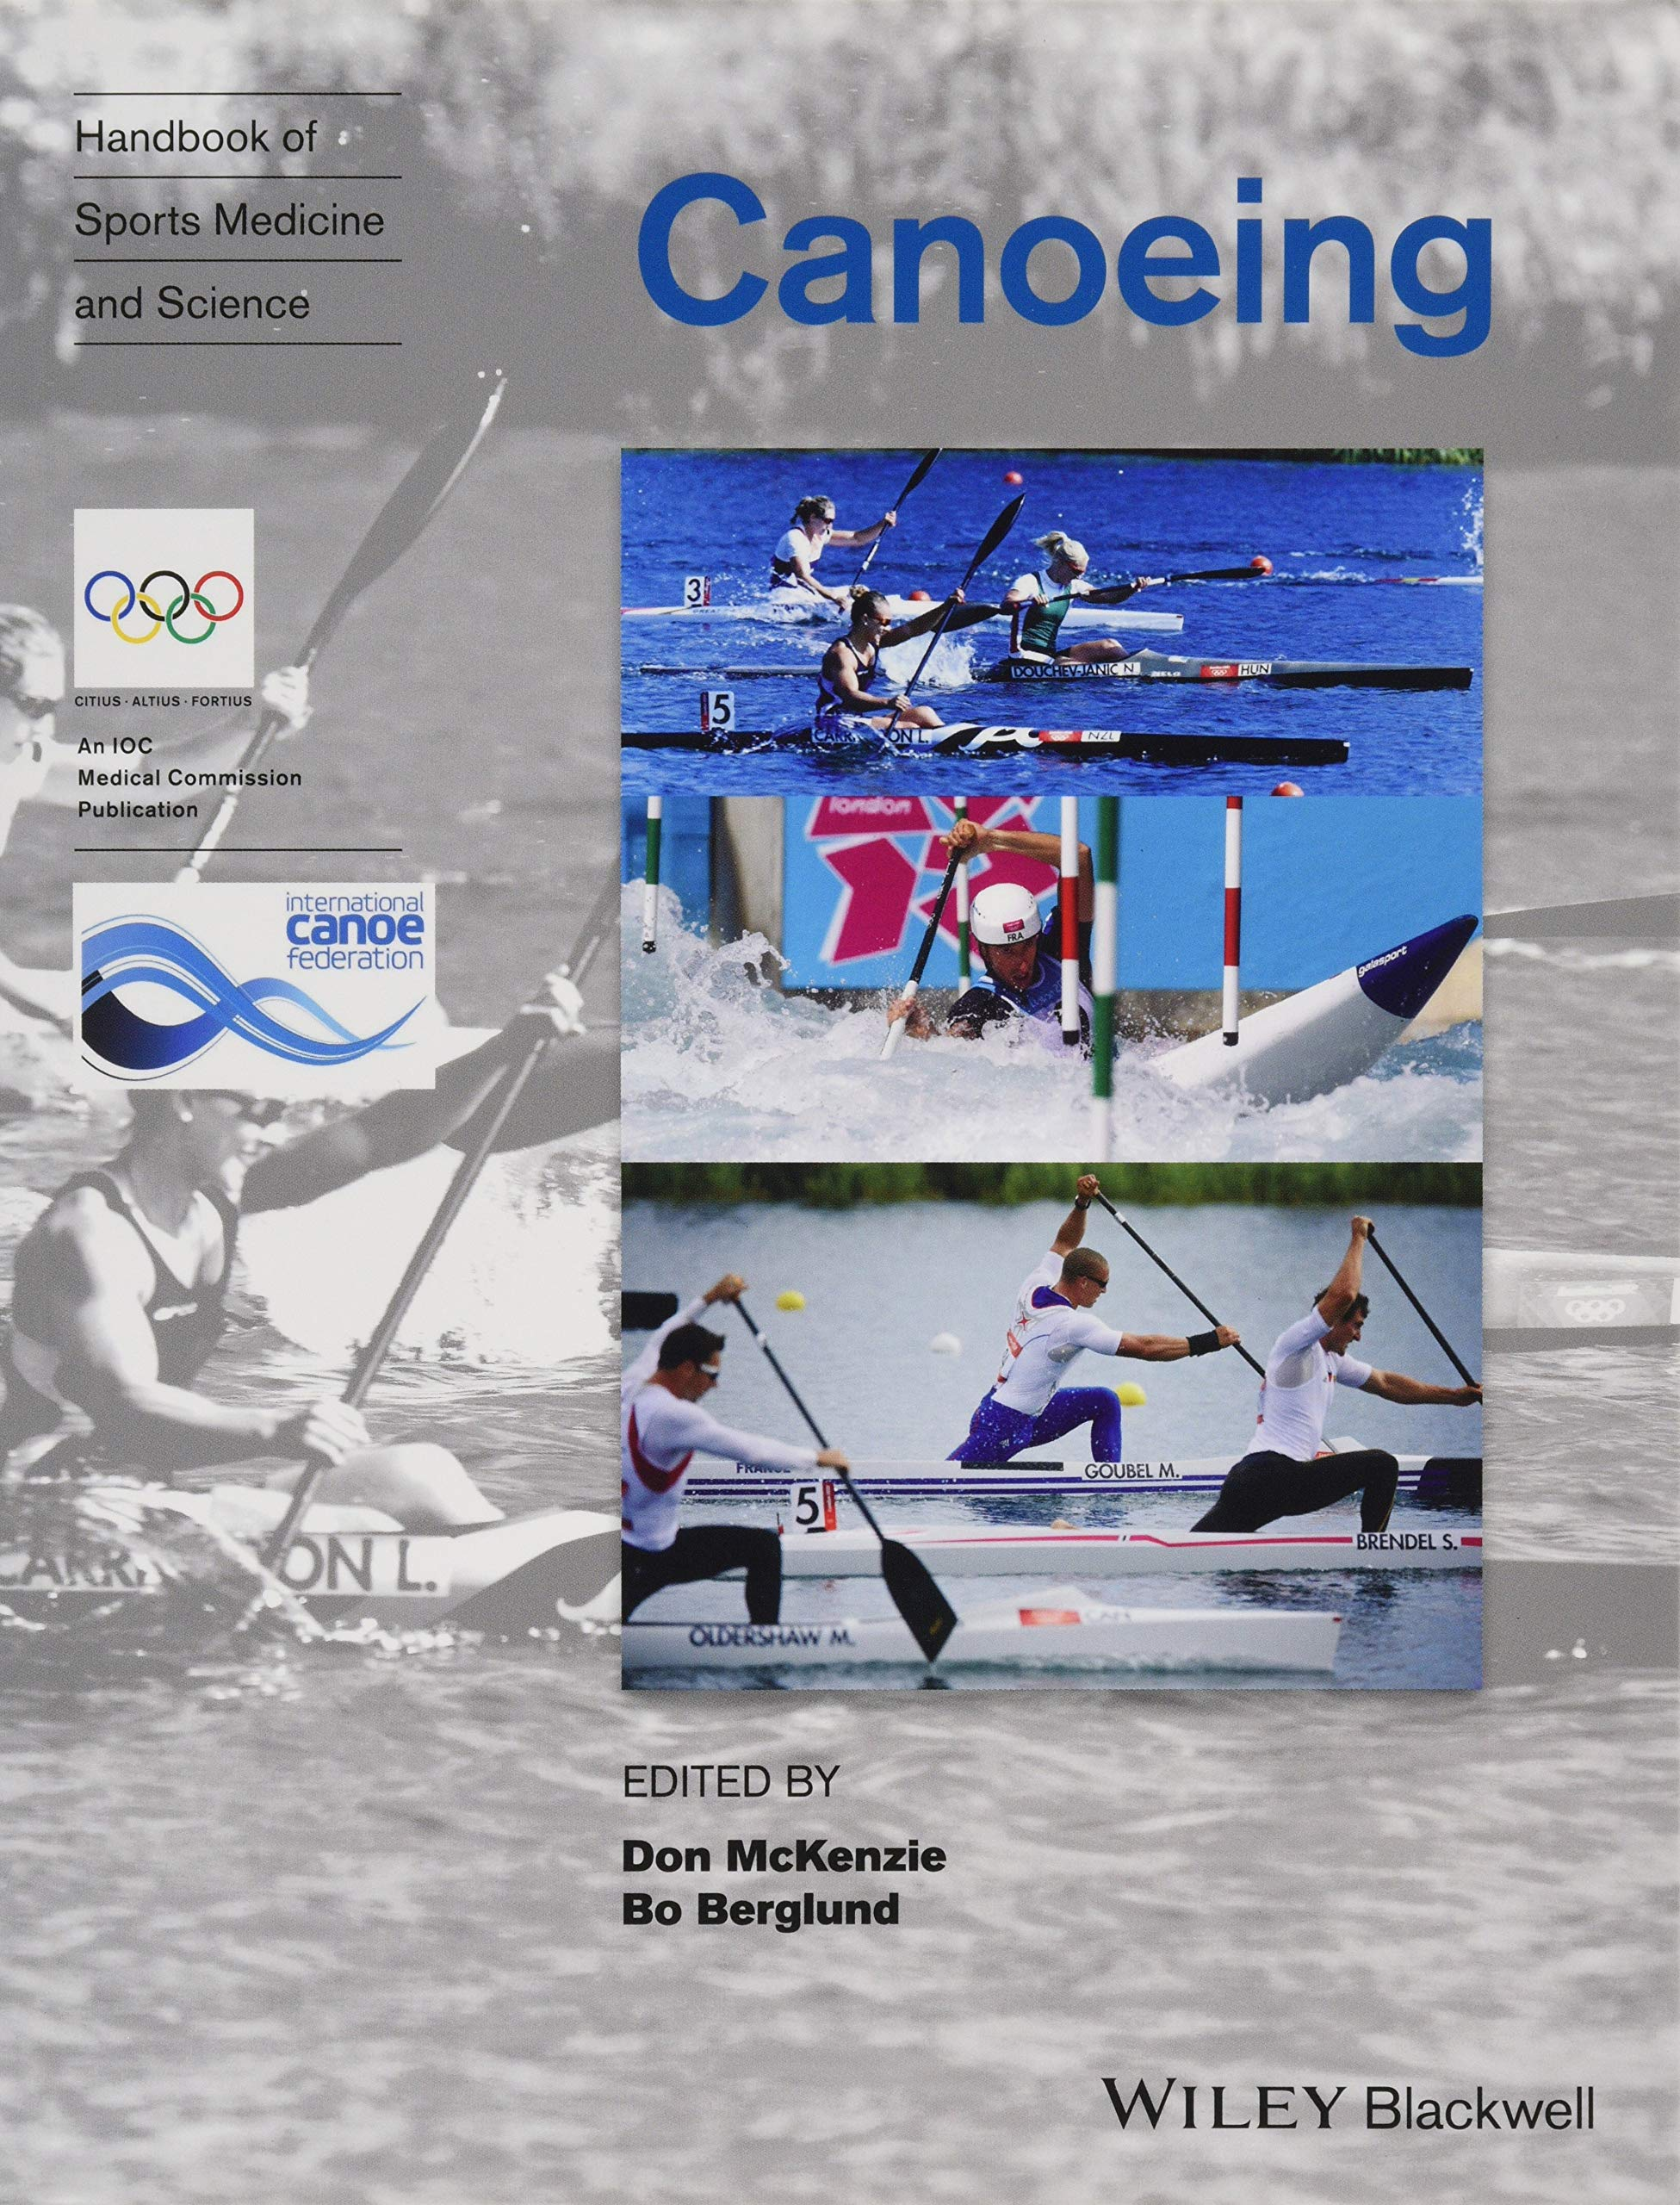 Handbook of Sports Medicine and Science: Canoeing (Olympic Handbook of Sports Medicine) by Wiley-Blackwell